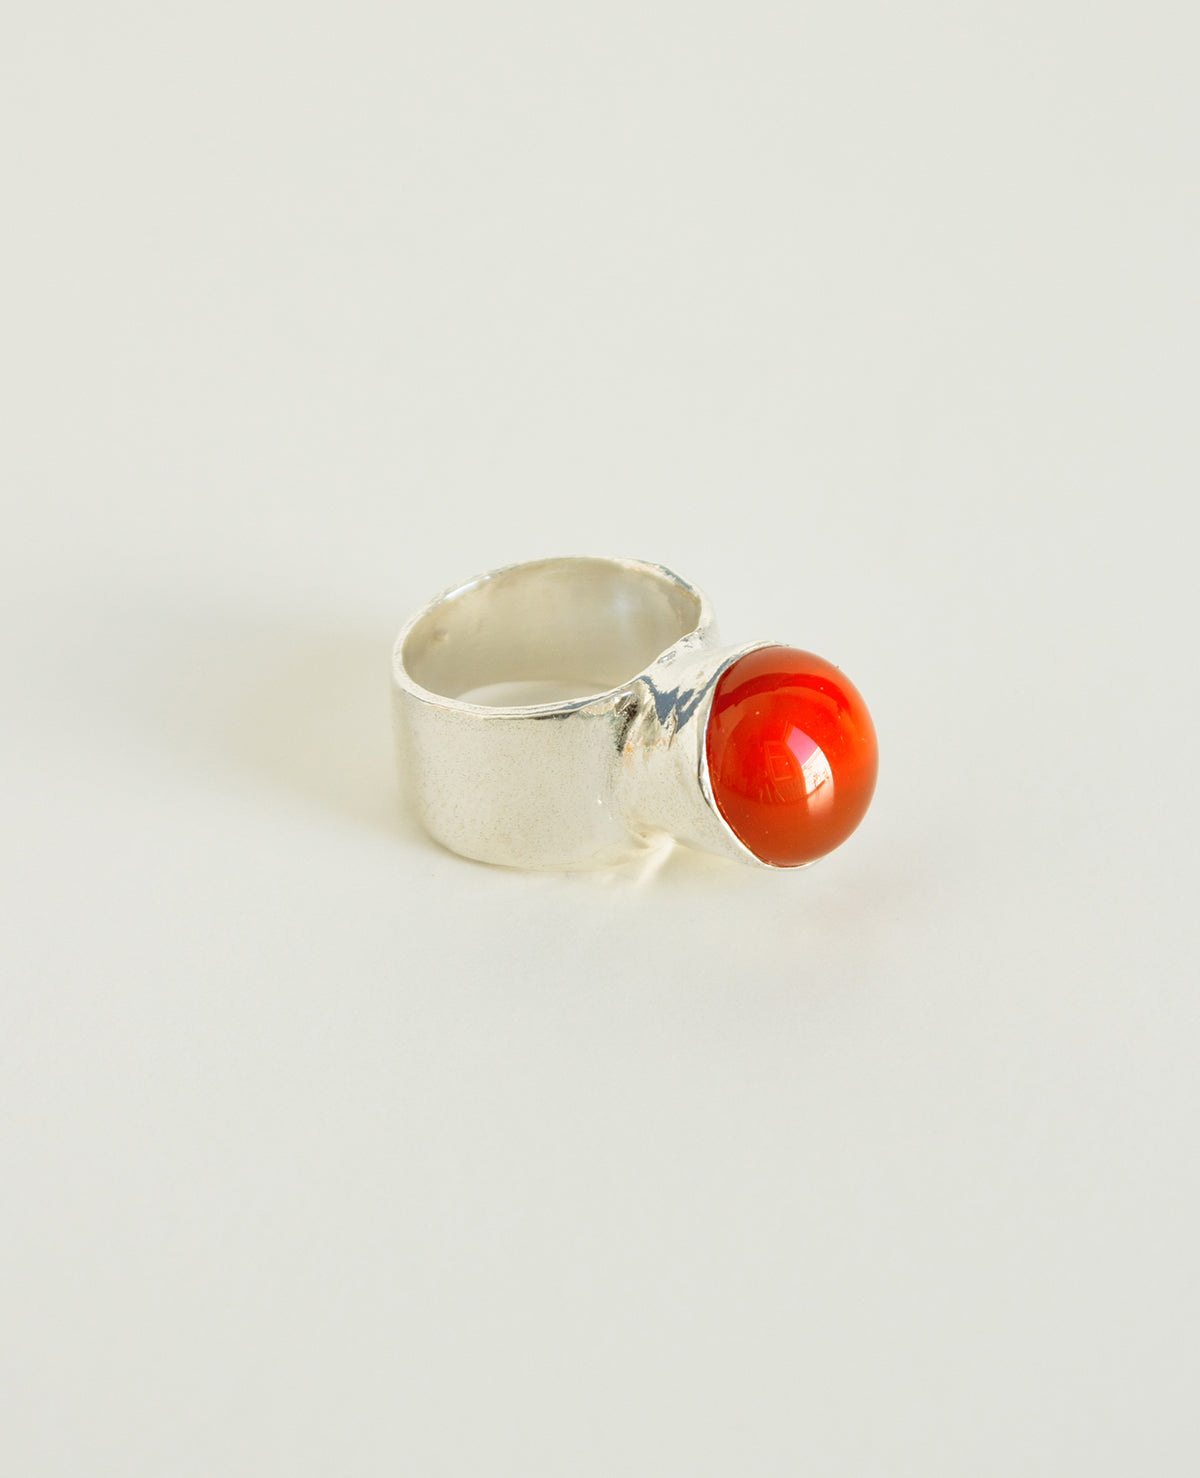 JULES // silver - ORA-C jewelry - handmade jewelry by Montreal based independent designer Caroline Pham